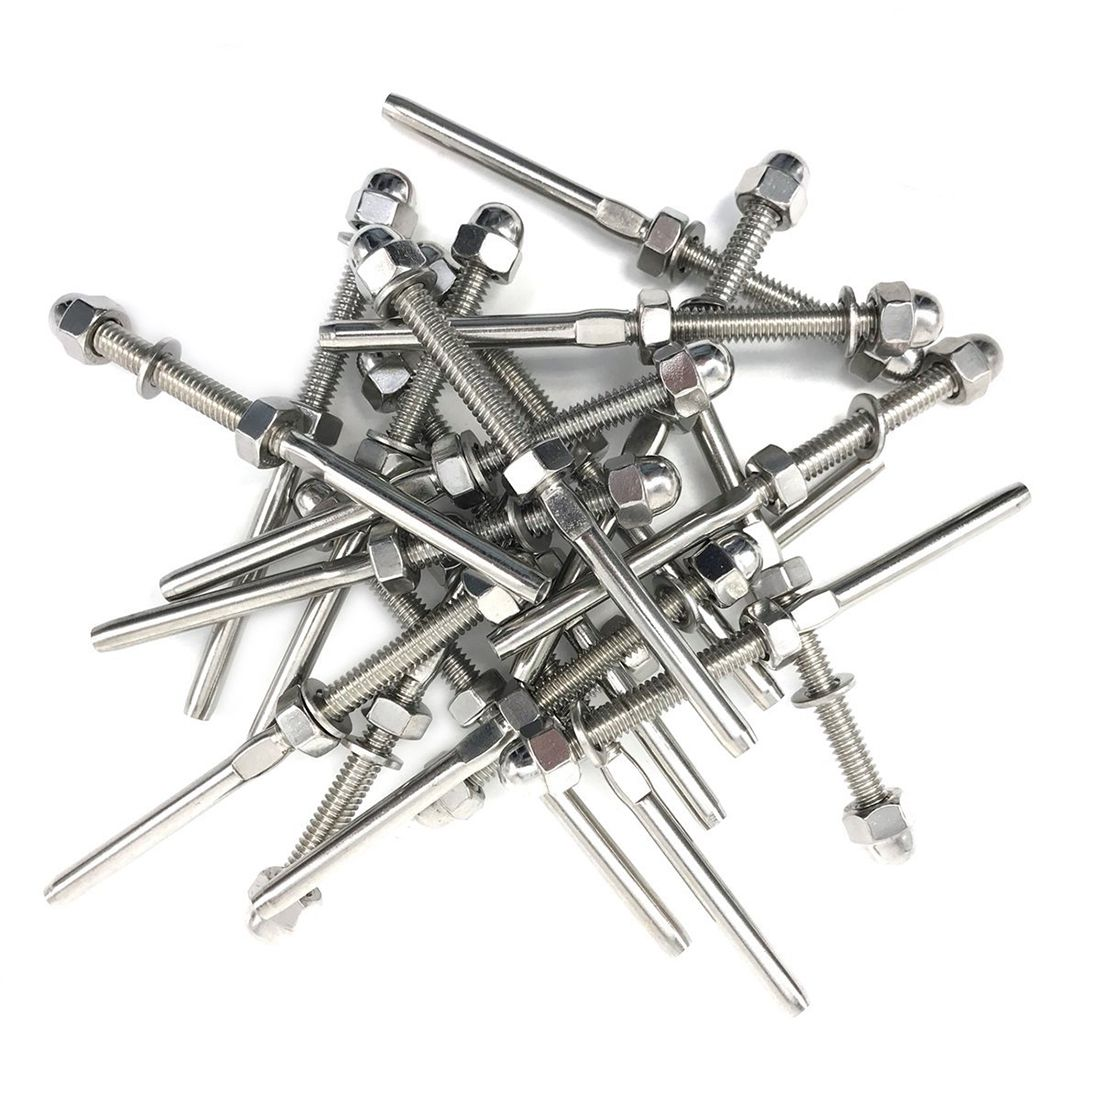 M5 RH , 3mm wire, Swage stud, T02 0305 01R stainless steel 316 ...